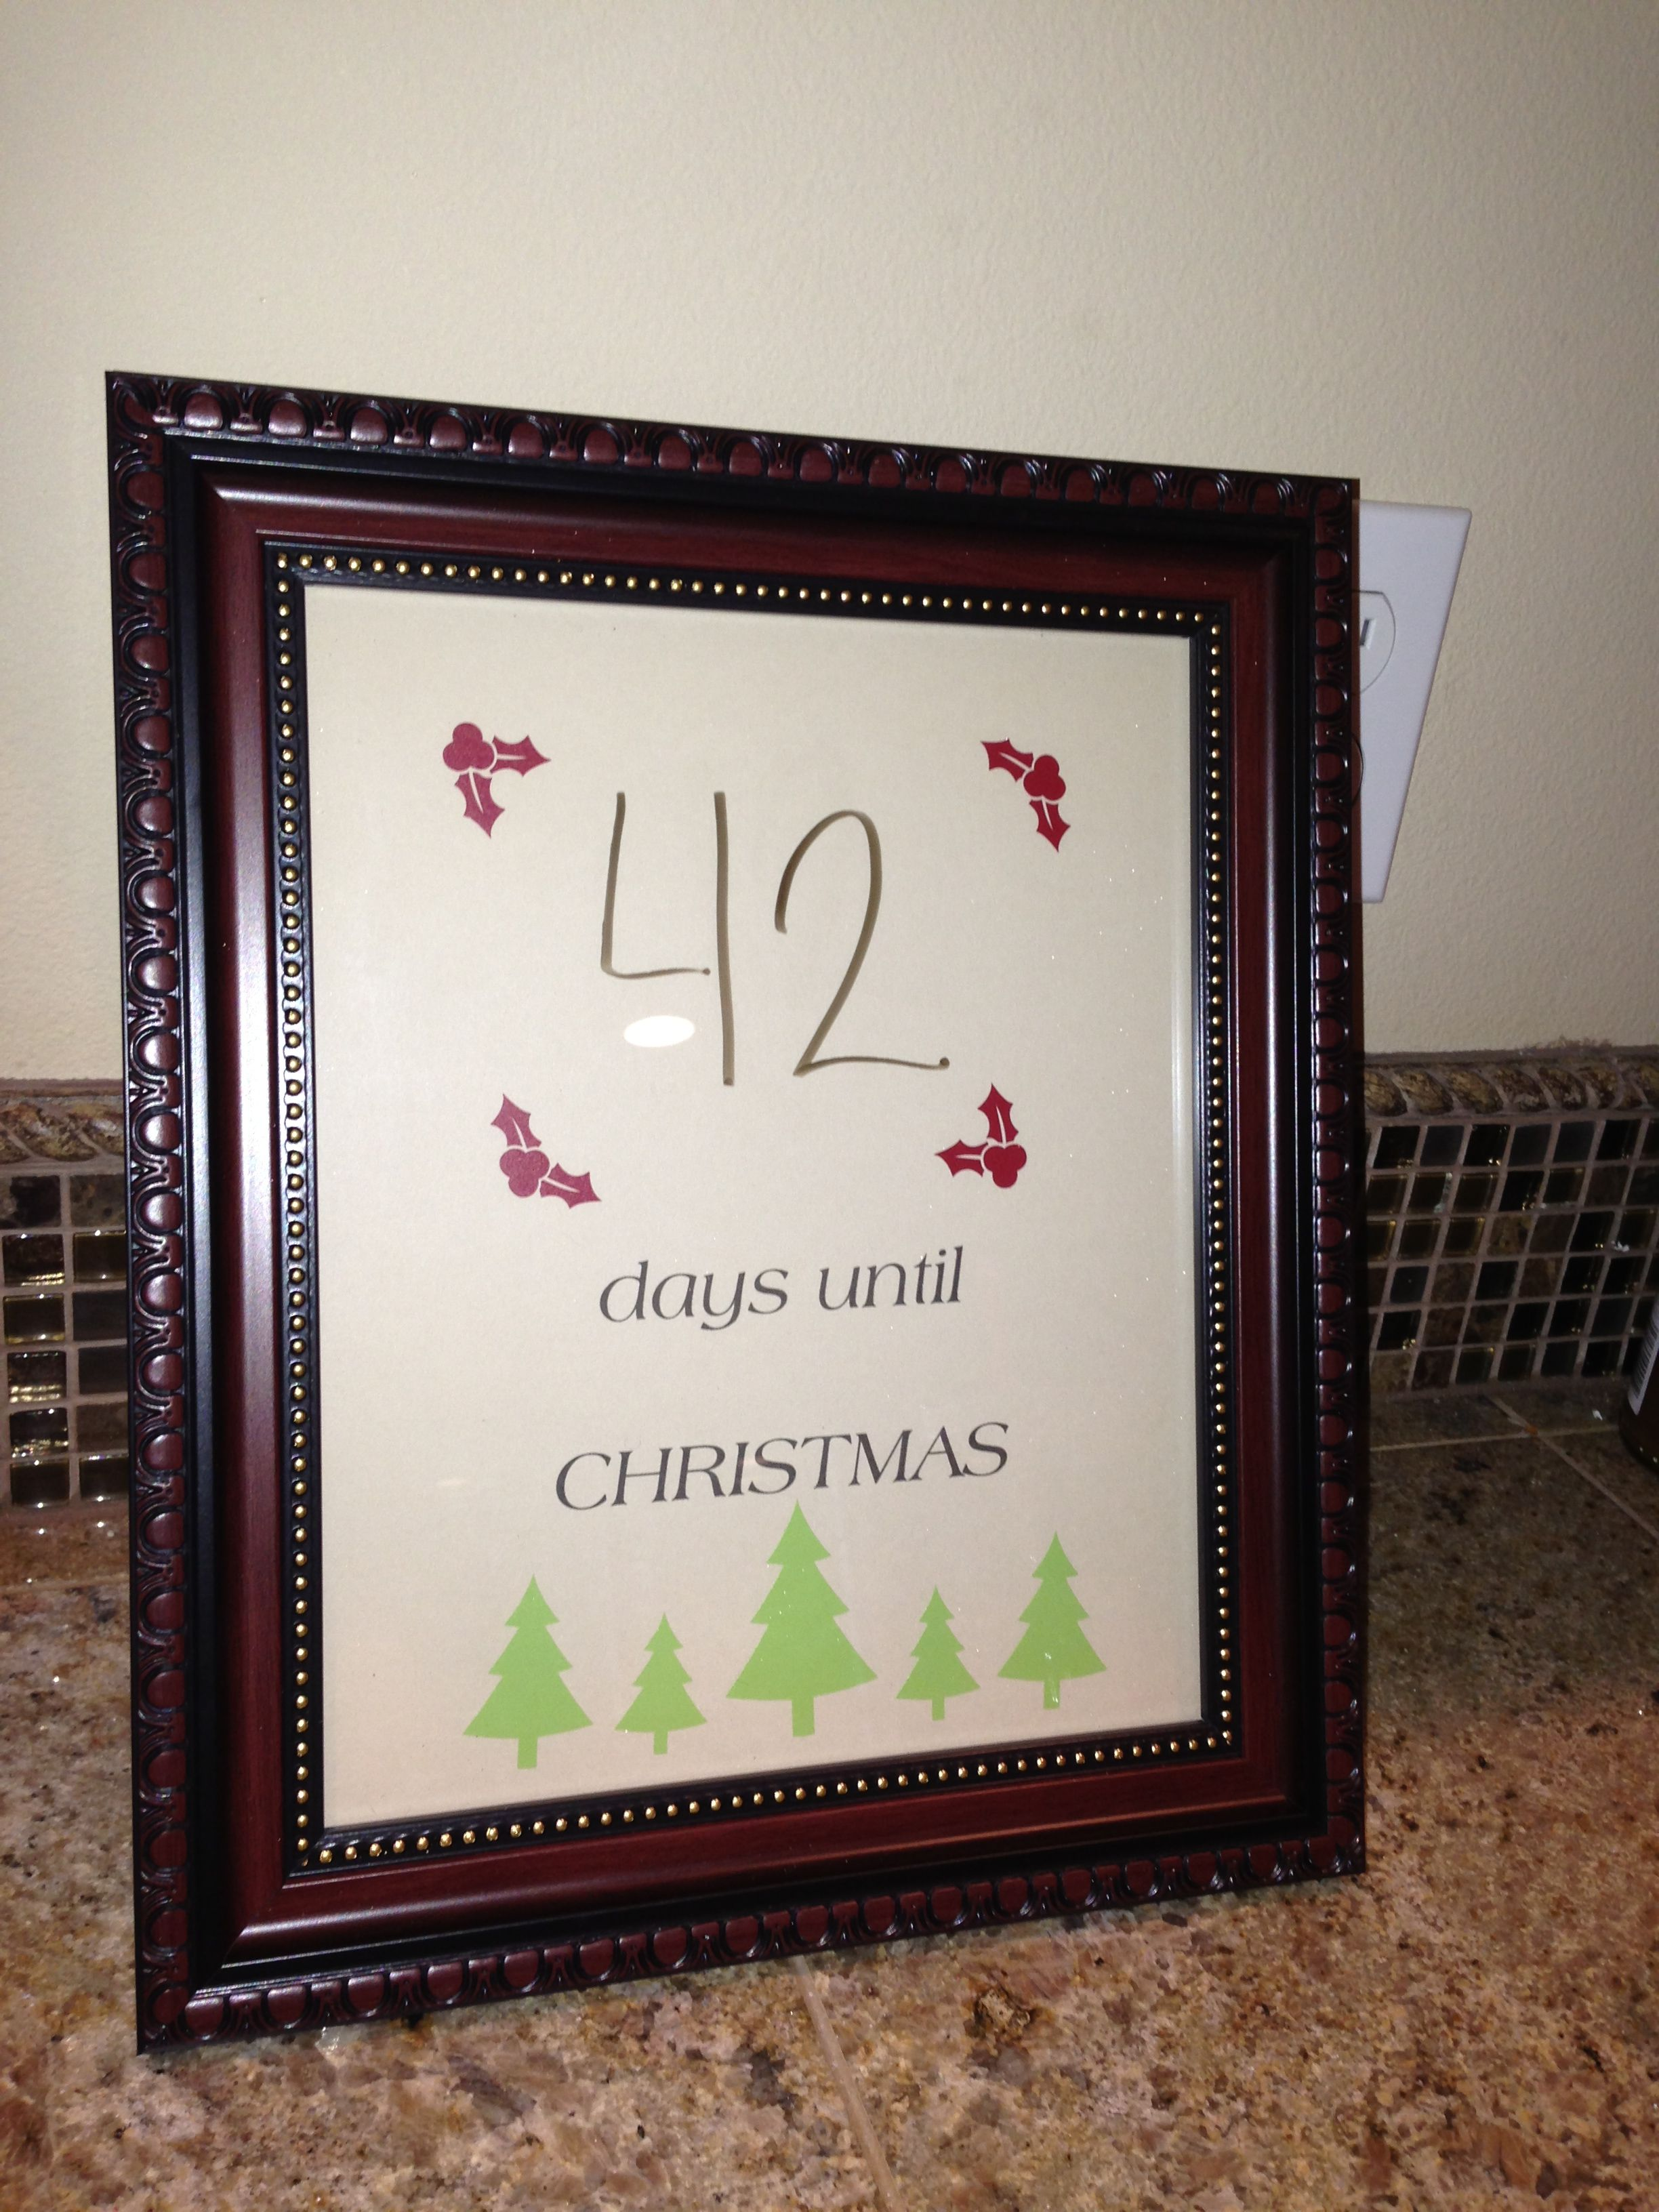 Christmas Countdown Picture Frame With Printed Card Stock Inside And Write On Front With Dry Era Christmas Crafts For Kids Crafts For Kids Christmas Countdown